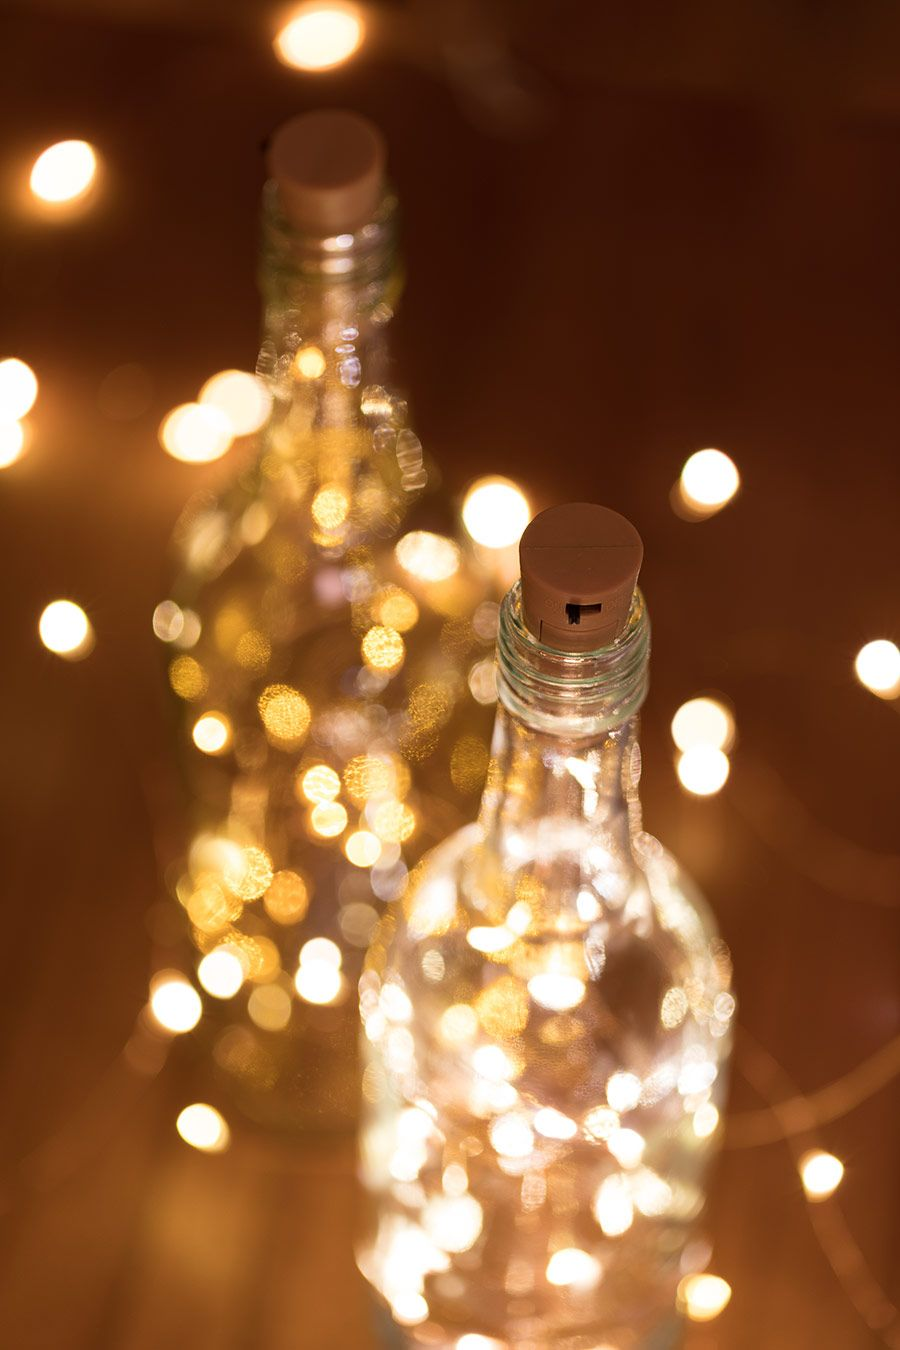 Wine Bottle LED Fairy Lights - Cork Shaped Battery Operated LED Lights w/ Copper Wire - 6.5ft #fairylights